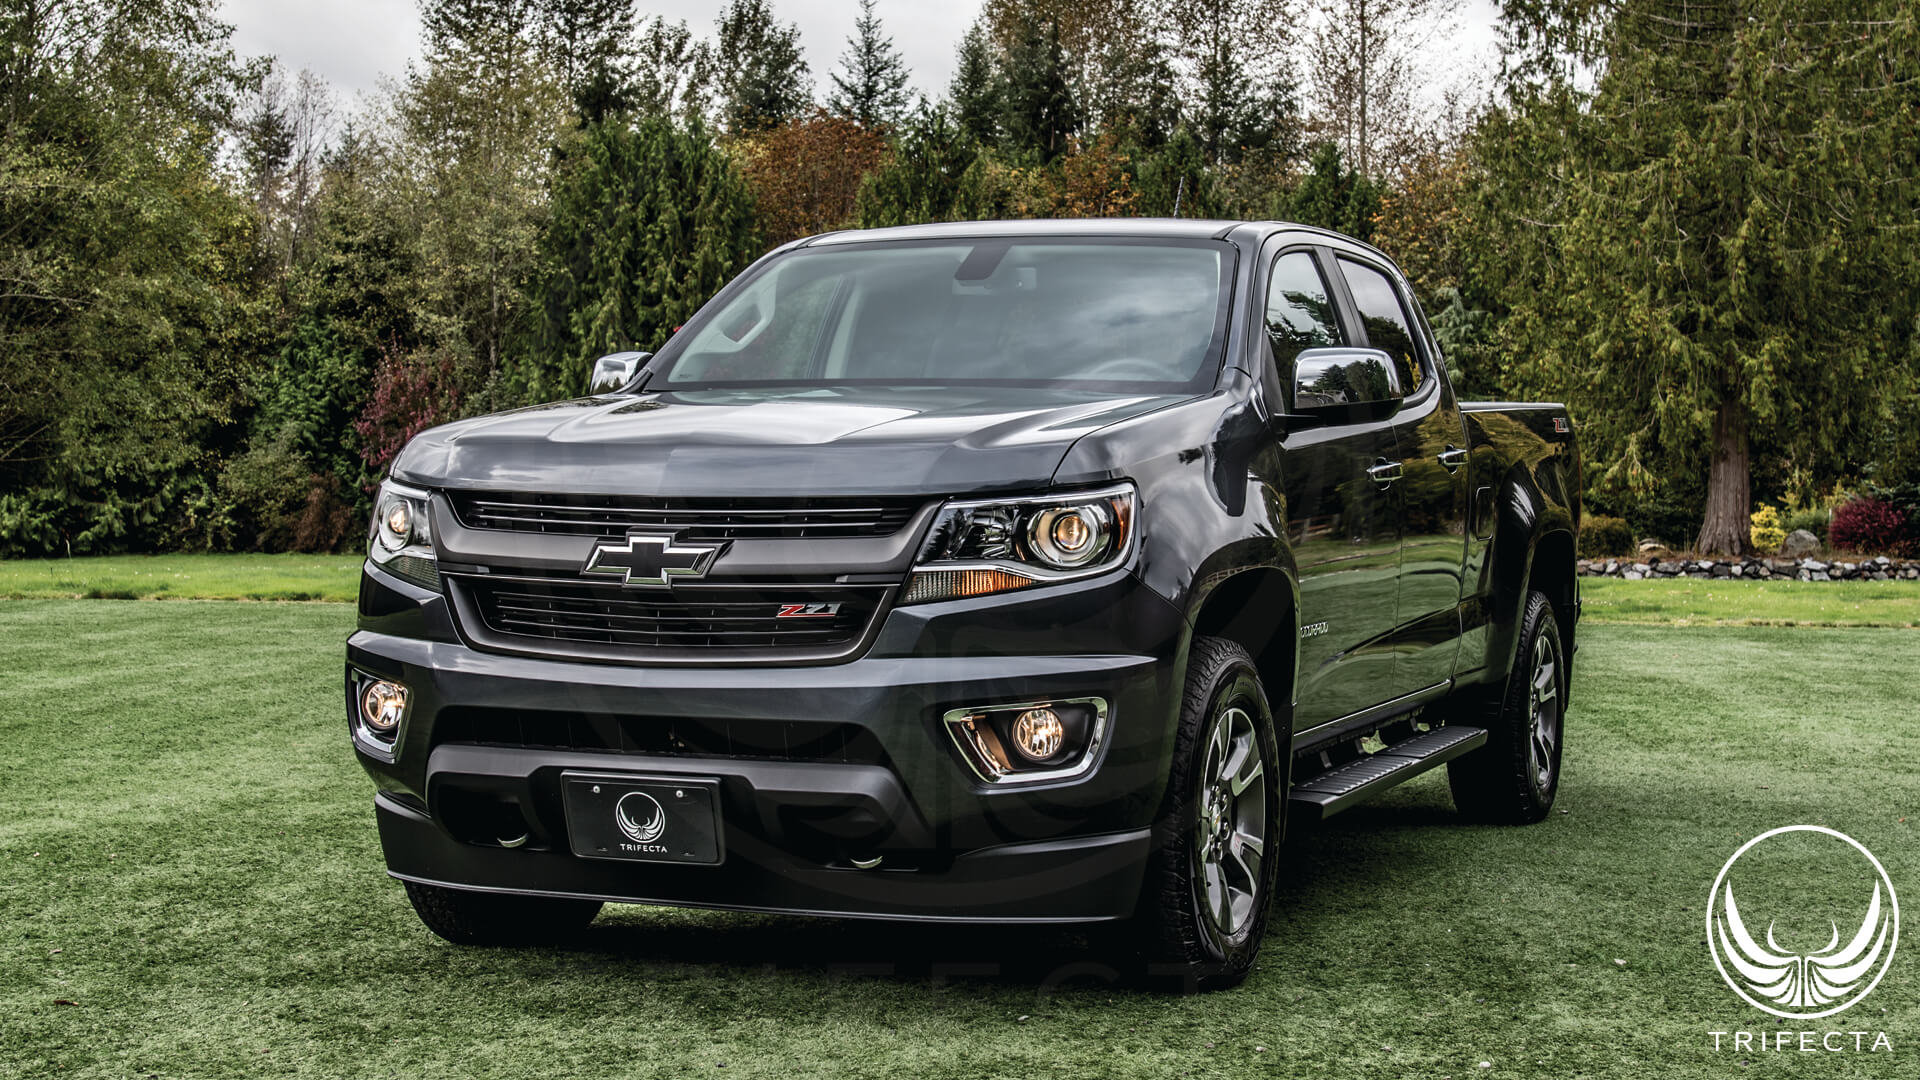 Product Review: 2017--2018+ Chevrolet Colorado - 3.6L - Advantage